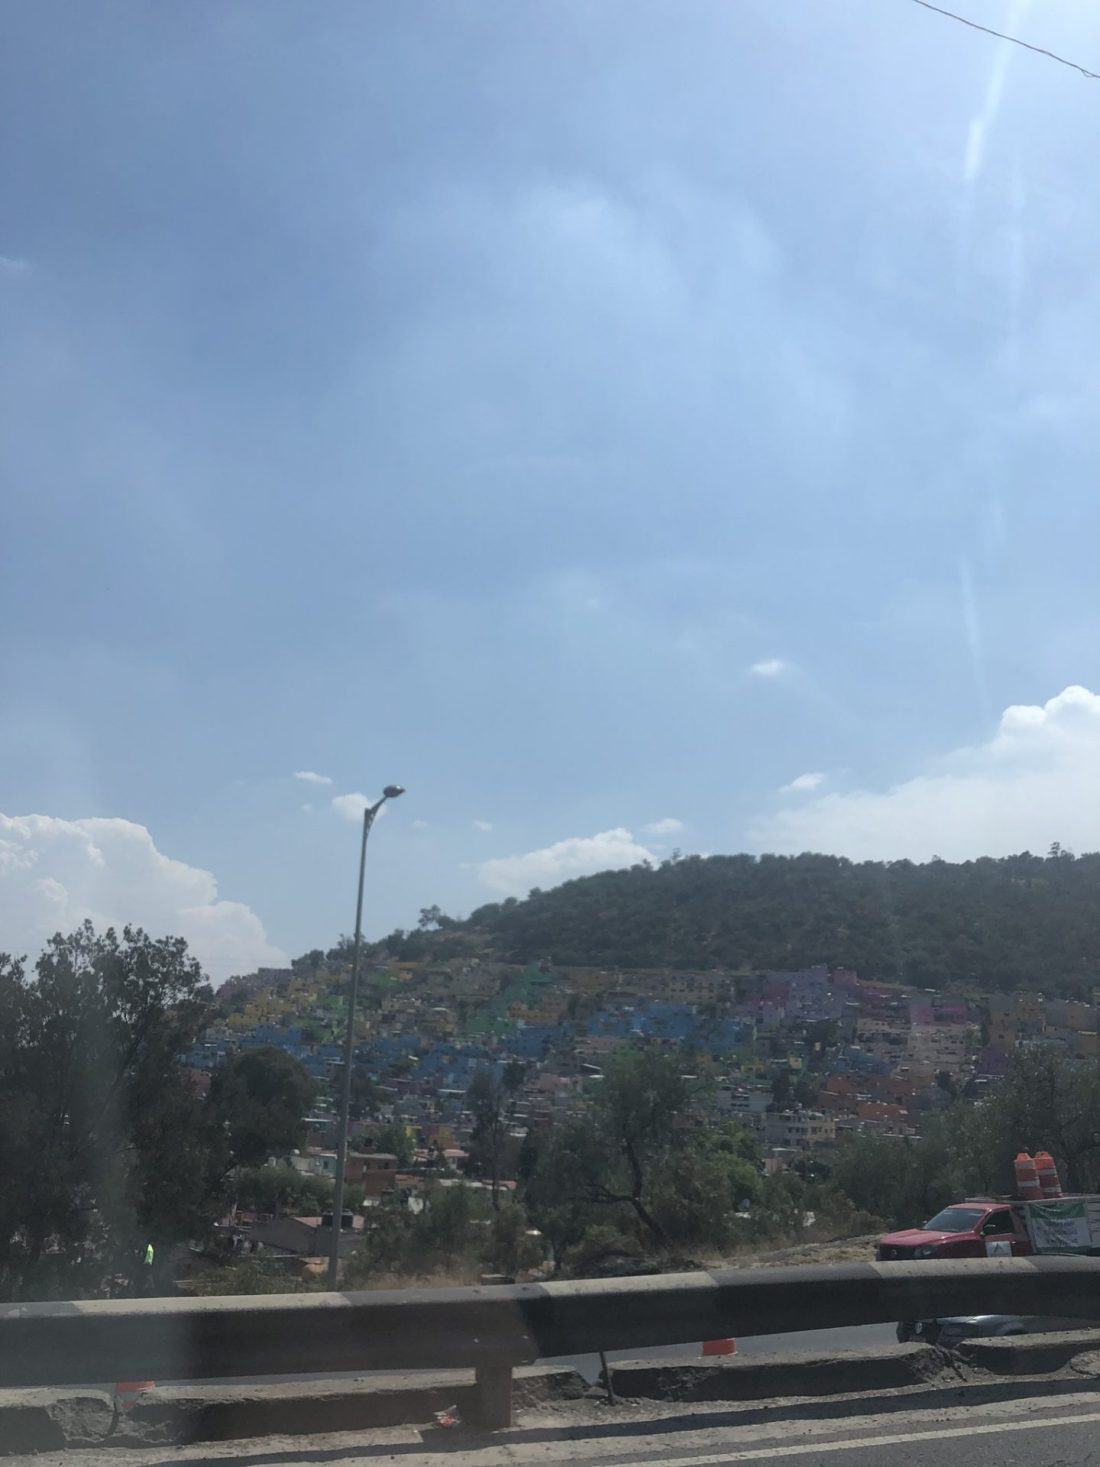 The drive back from Teotihuacan to Mexico City